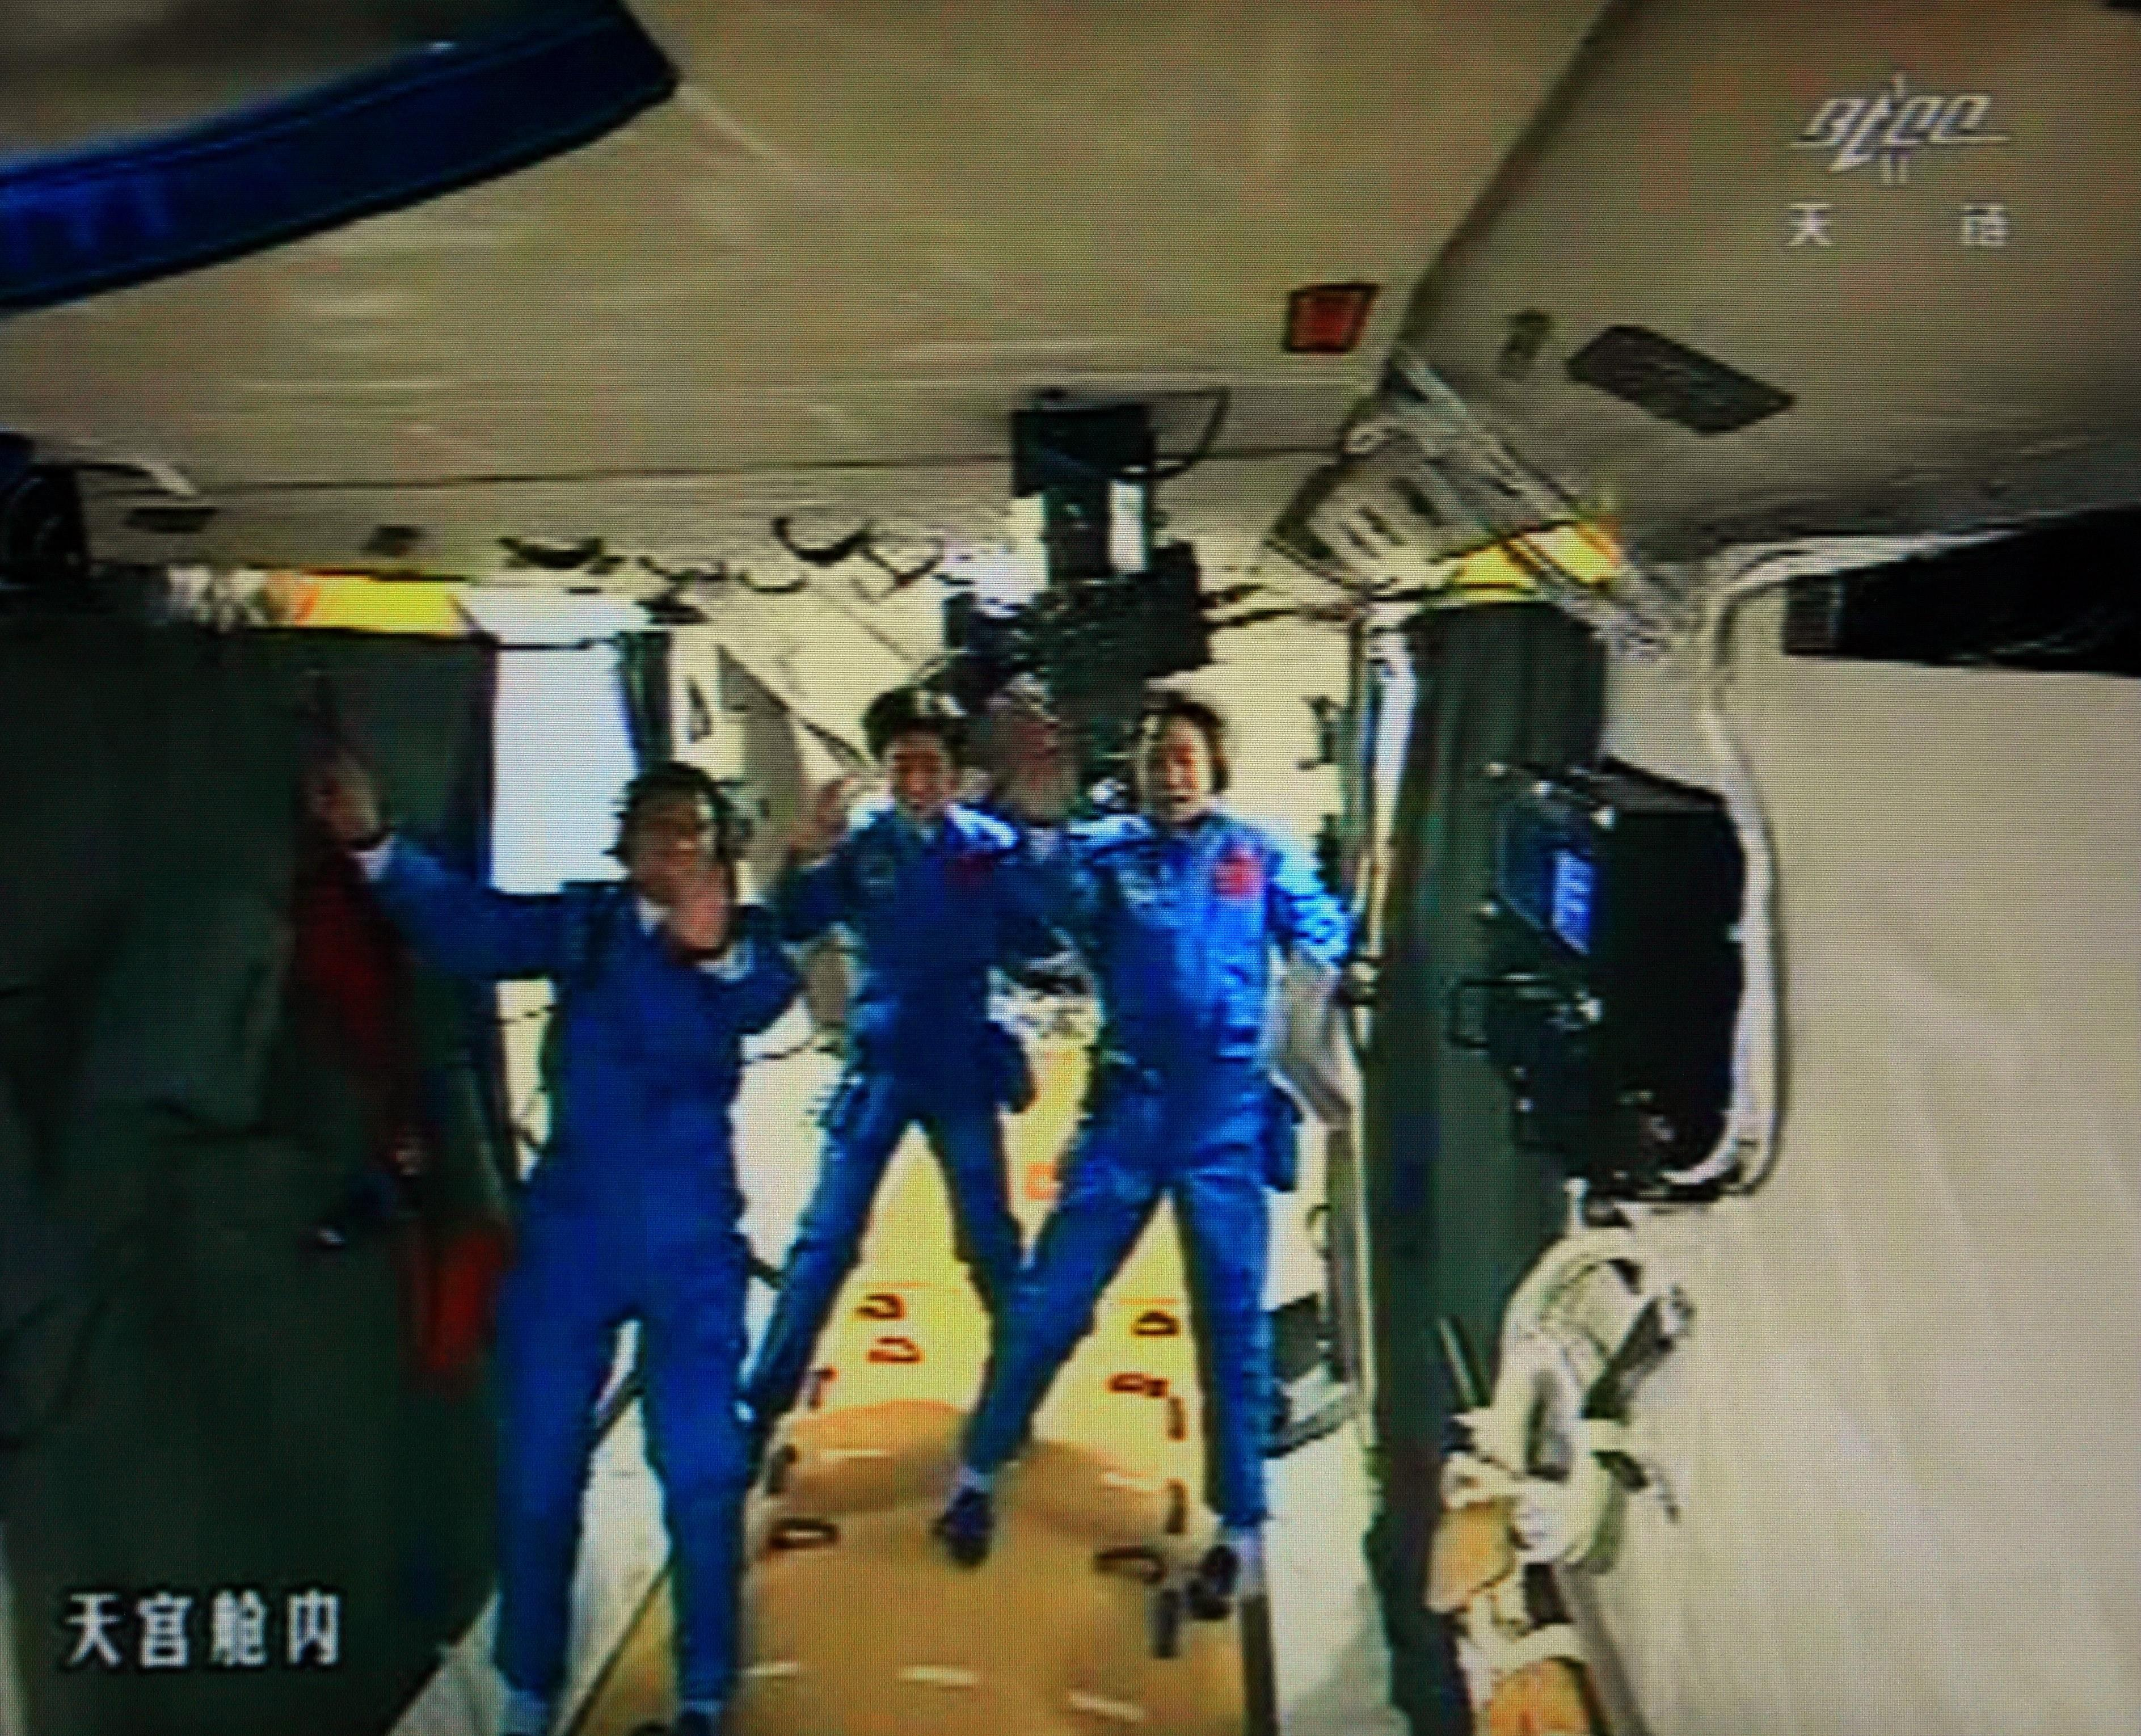 Chinese Astronauts in Tiangong-1